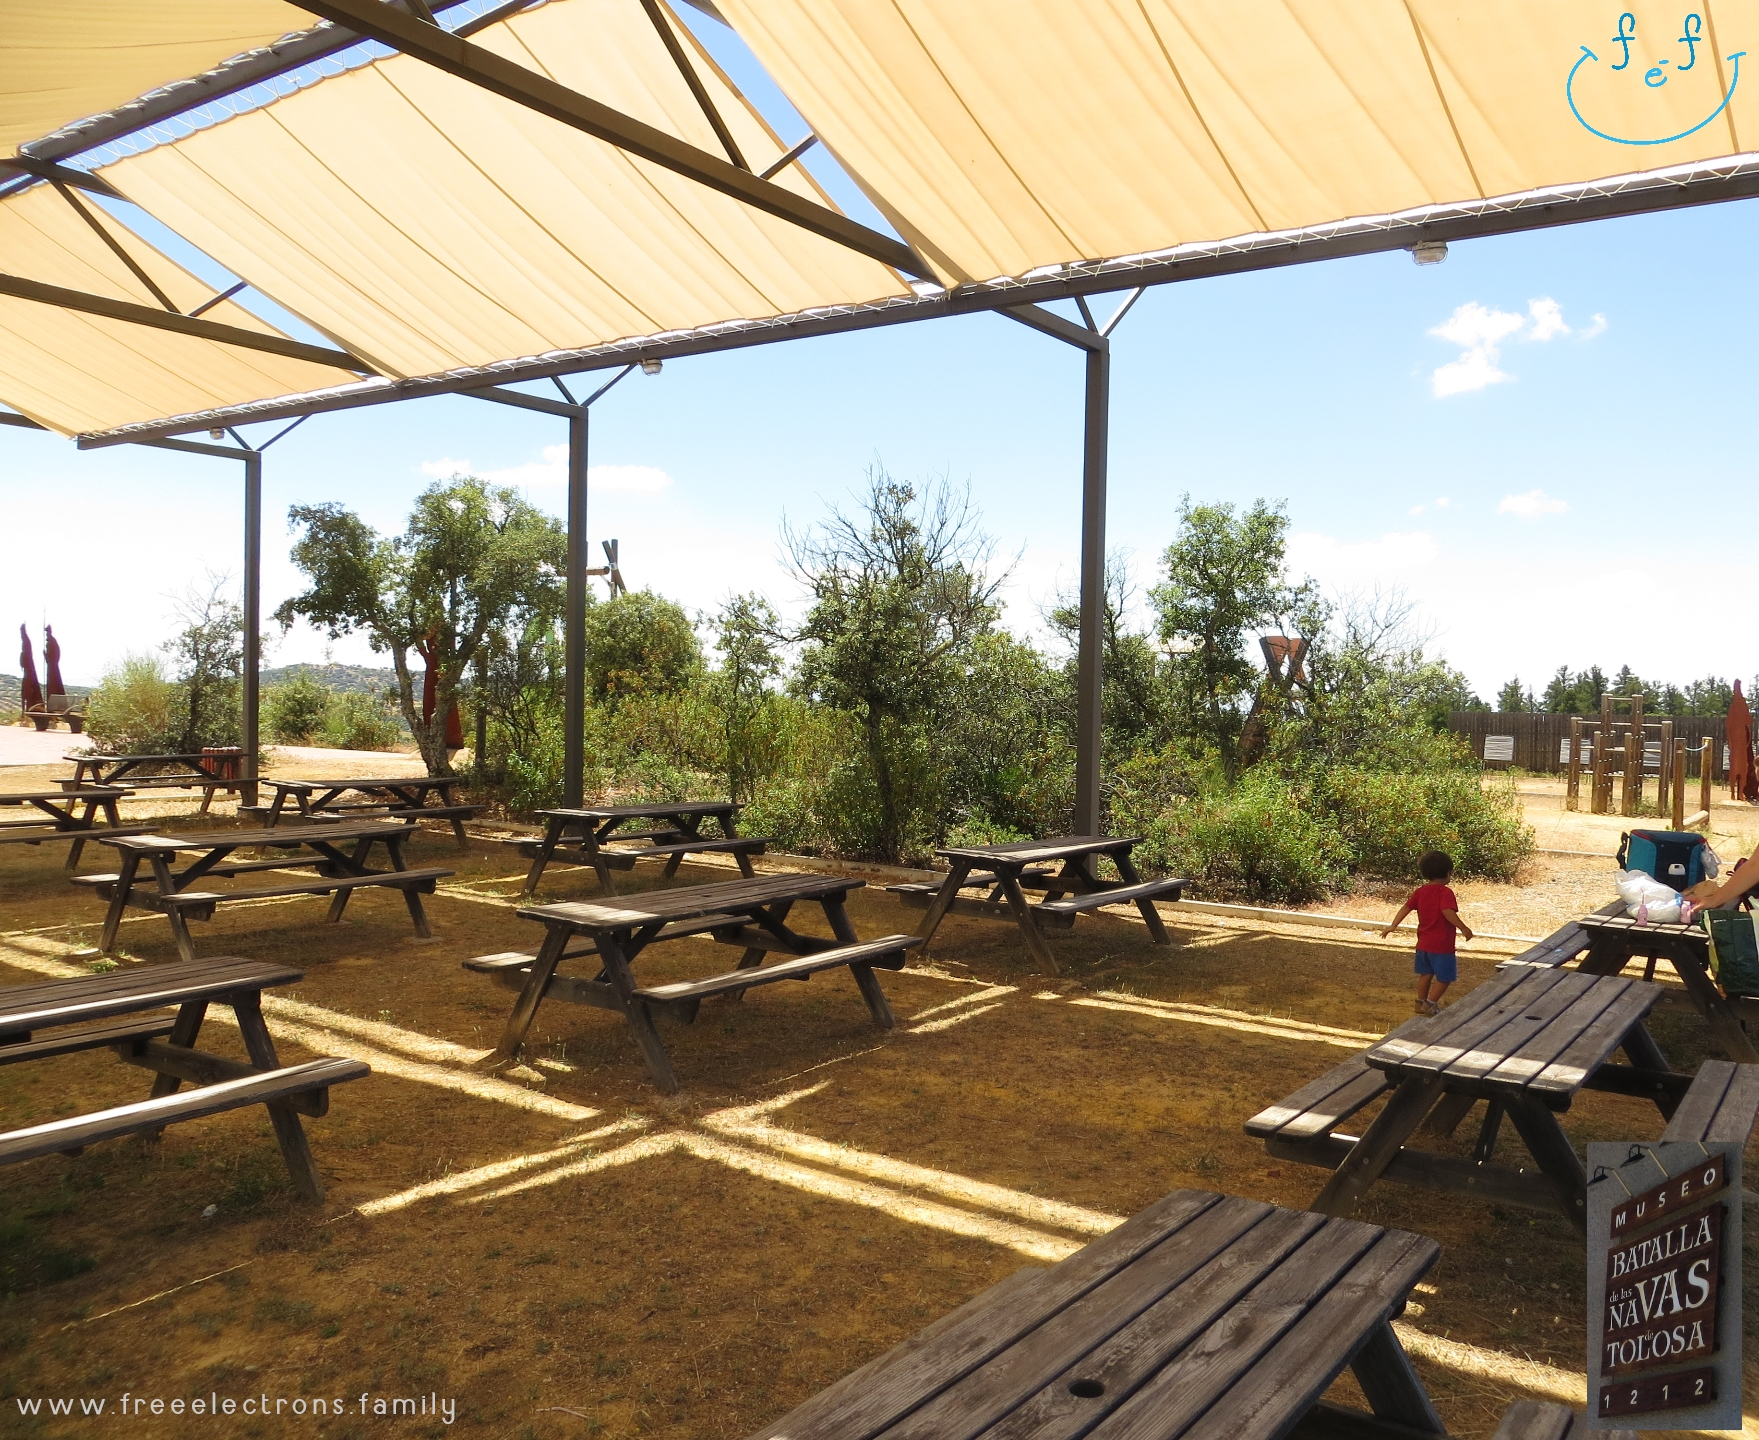 A #FreeElectrons.Family camping road trip Europe I stop in Santa Elena, Jaen, Spain (Espana).    The shaded picnic area next to the playground at the museum of the Battle of the Las Navas, provides much needed escape from the Andalusian sun.  Rest while your kids play!